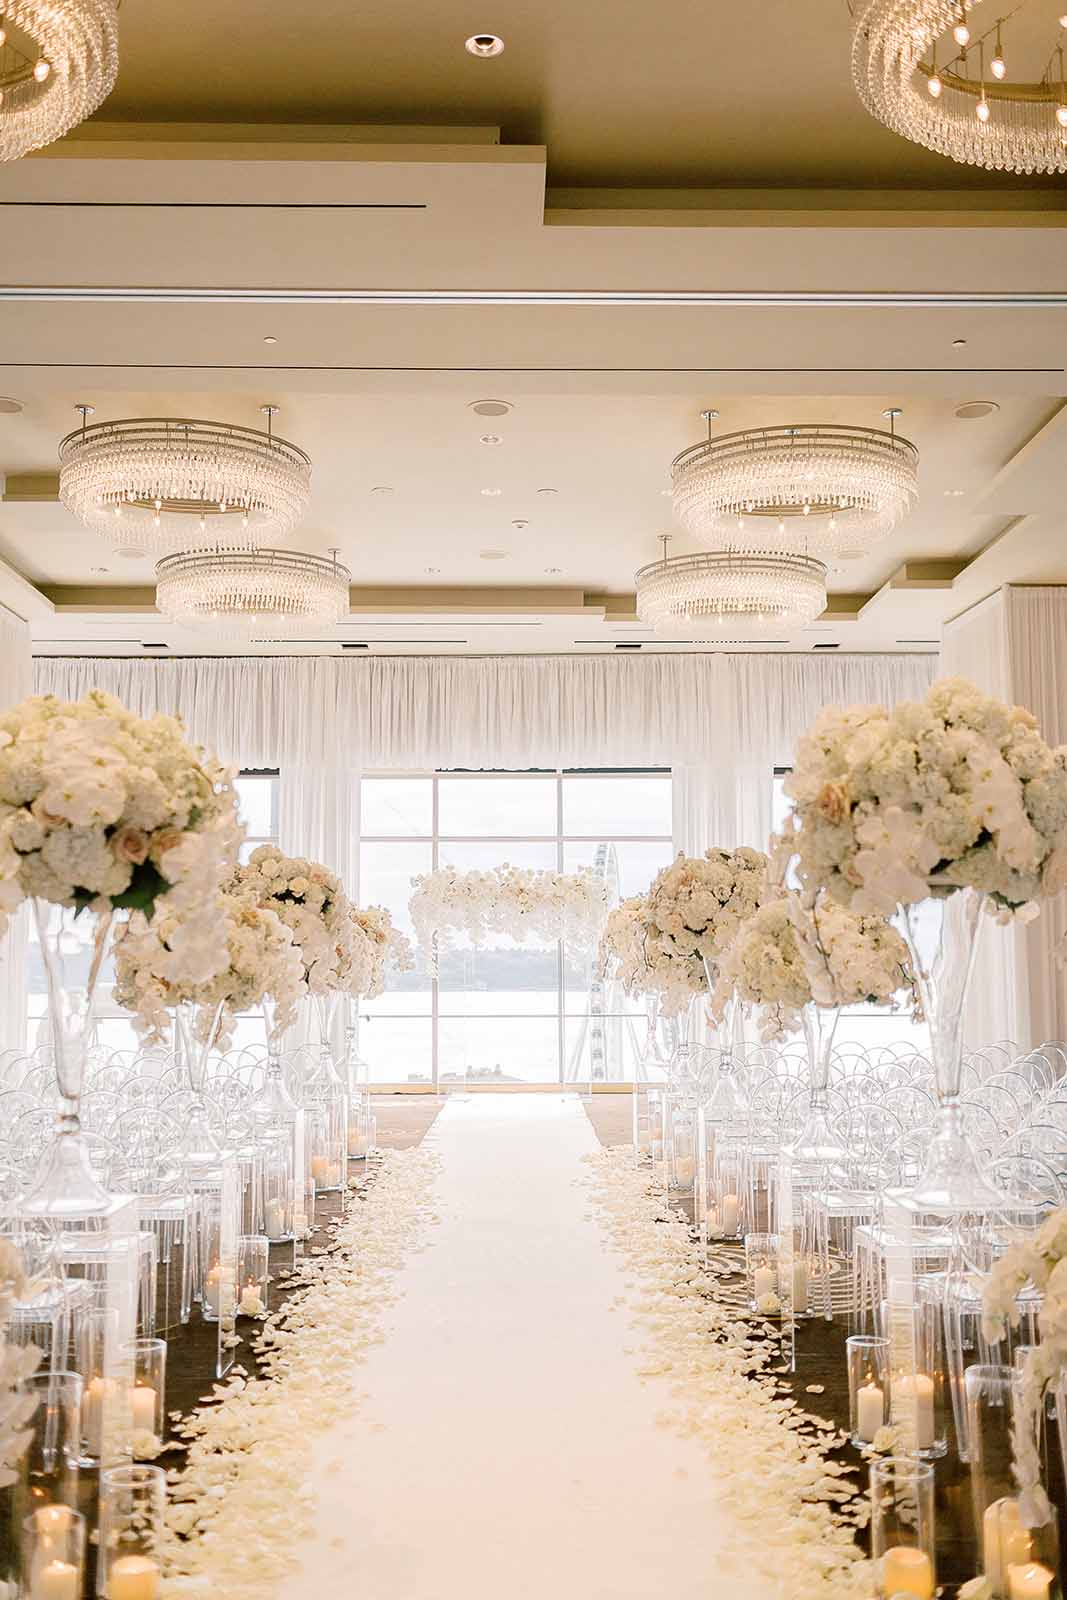 Formal white orchid filled wedding ceremony at Four Seasons Seattle ballroom aisle lined with tall white floral arrangements designed by Flora Nova Design